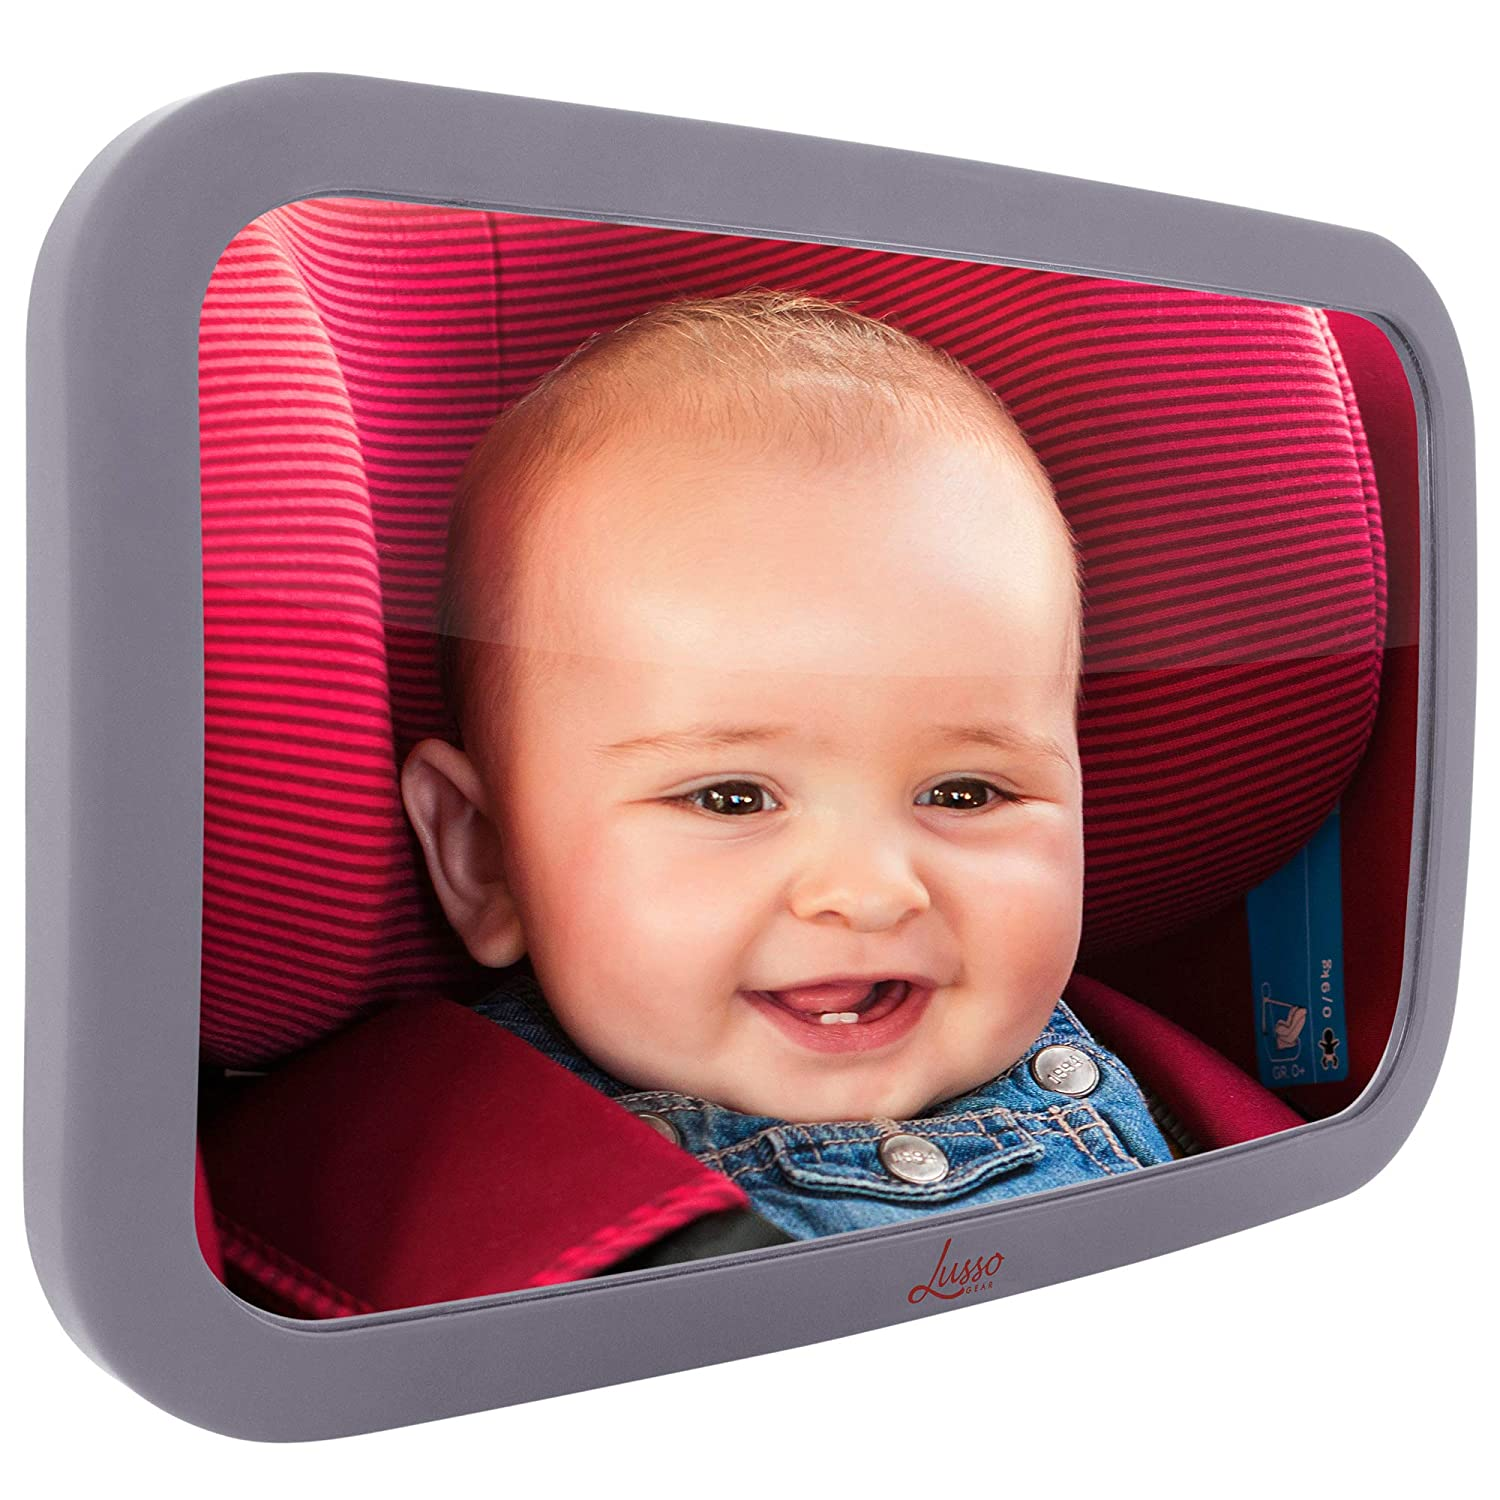 Lusso Gear Baby Backseat Mirror for and Largest - Car Most Ranking TOP20 Special price for a limited time Stabl